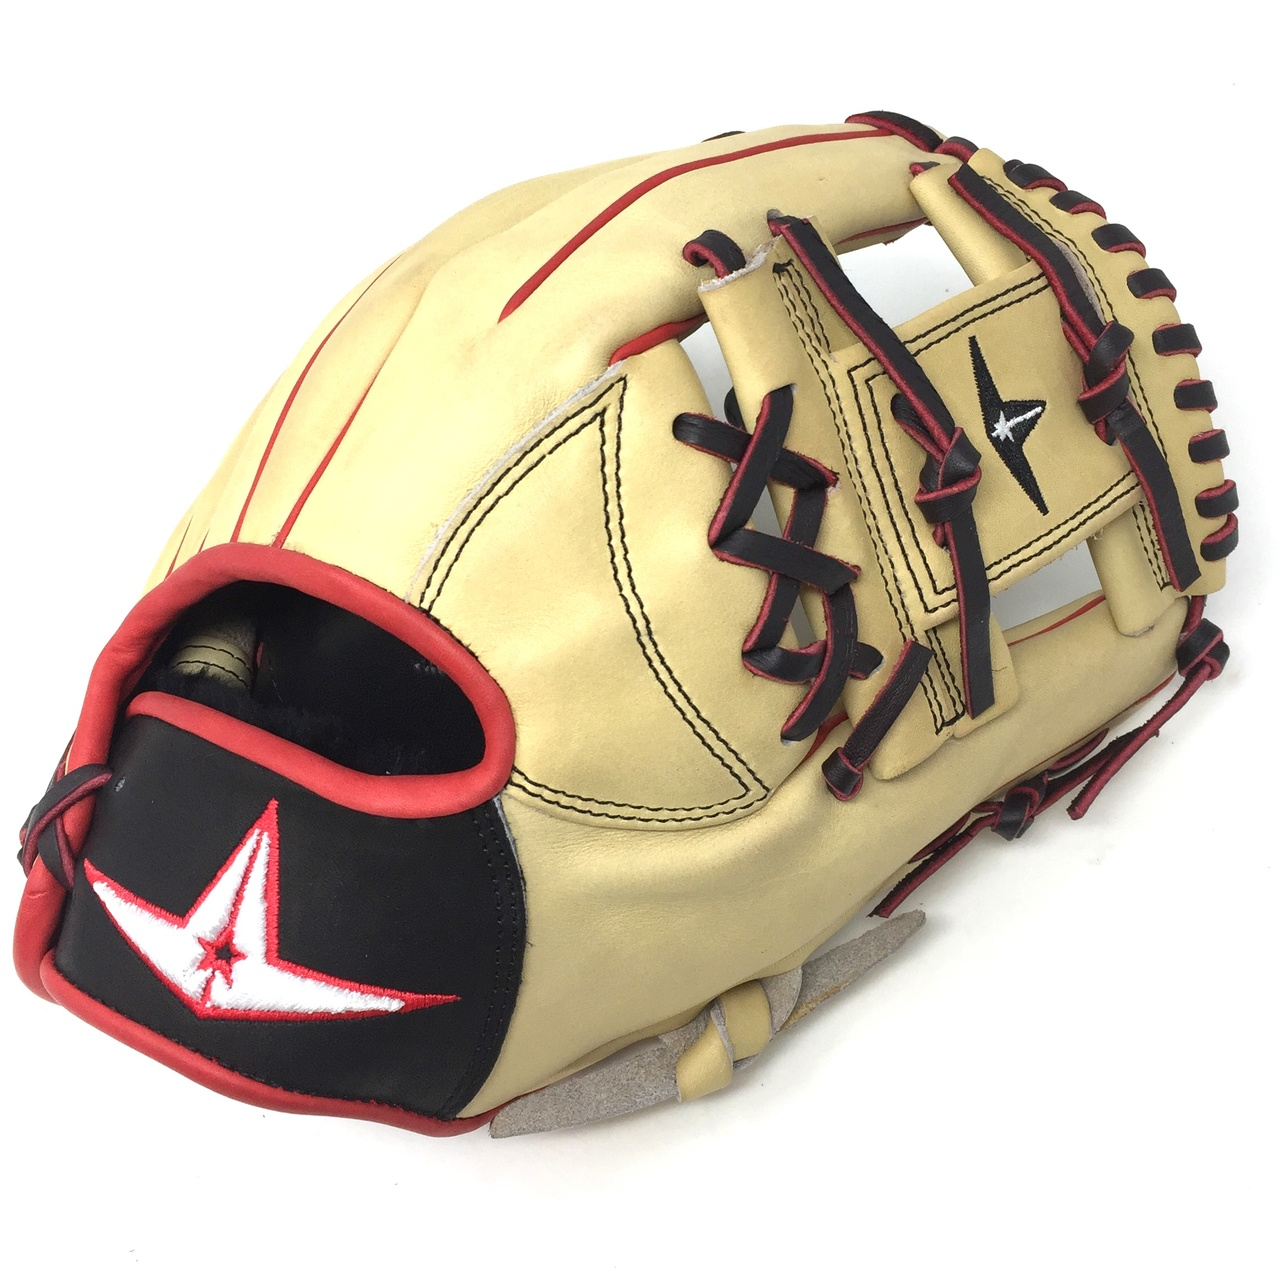 all-star-pro-elite-11-5-baseball-glove-i-web-right-hand-throw FGAS-1150I-RightHandThrow All-Star 029343048319 <span>A natural addition to baseballs most preferred line of catchers mitts